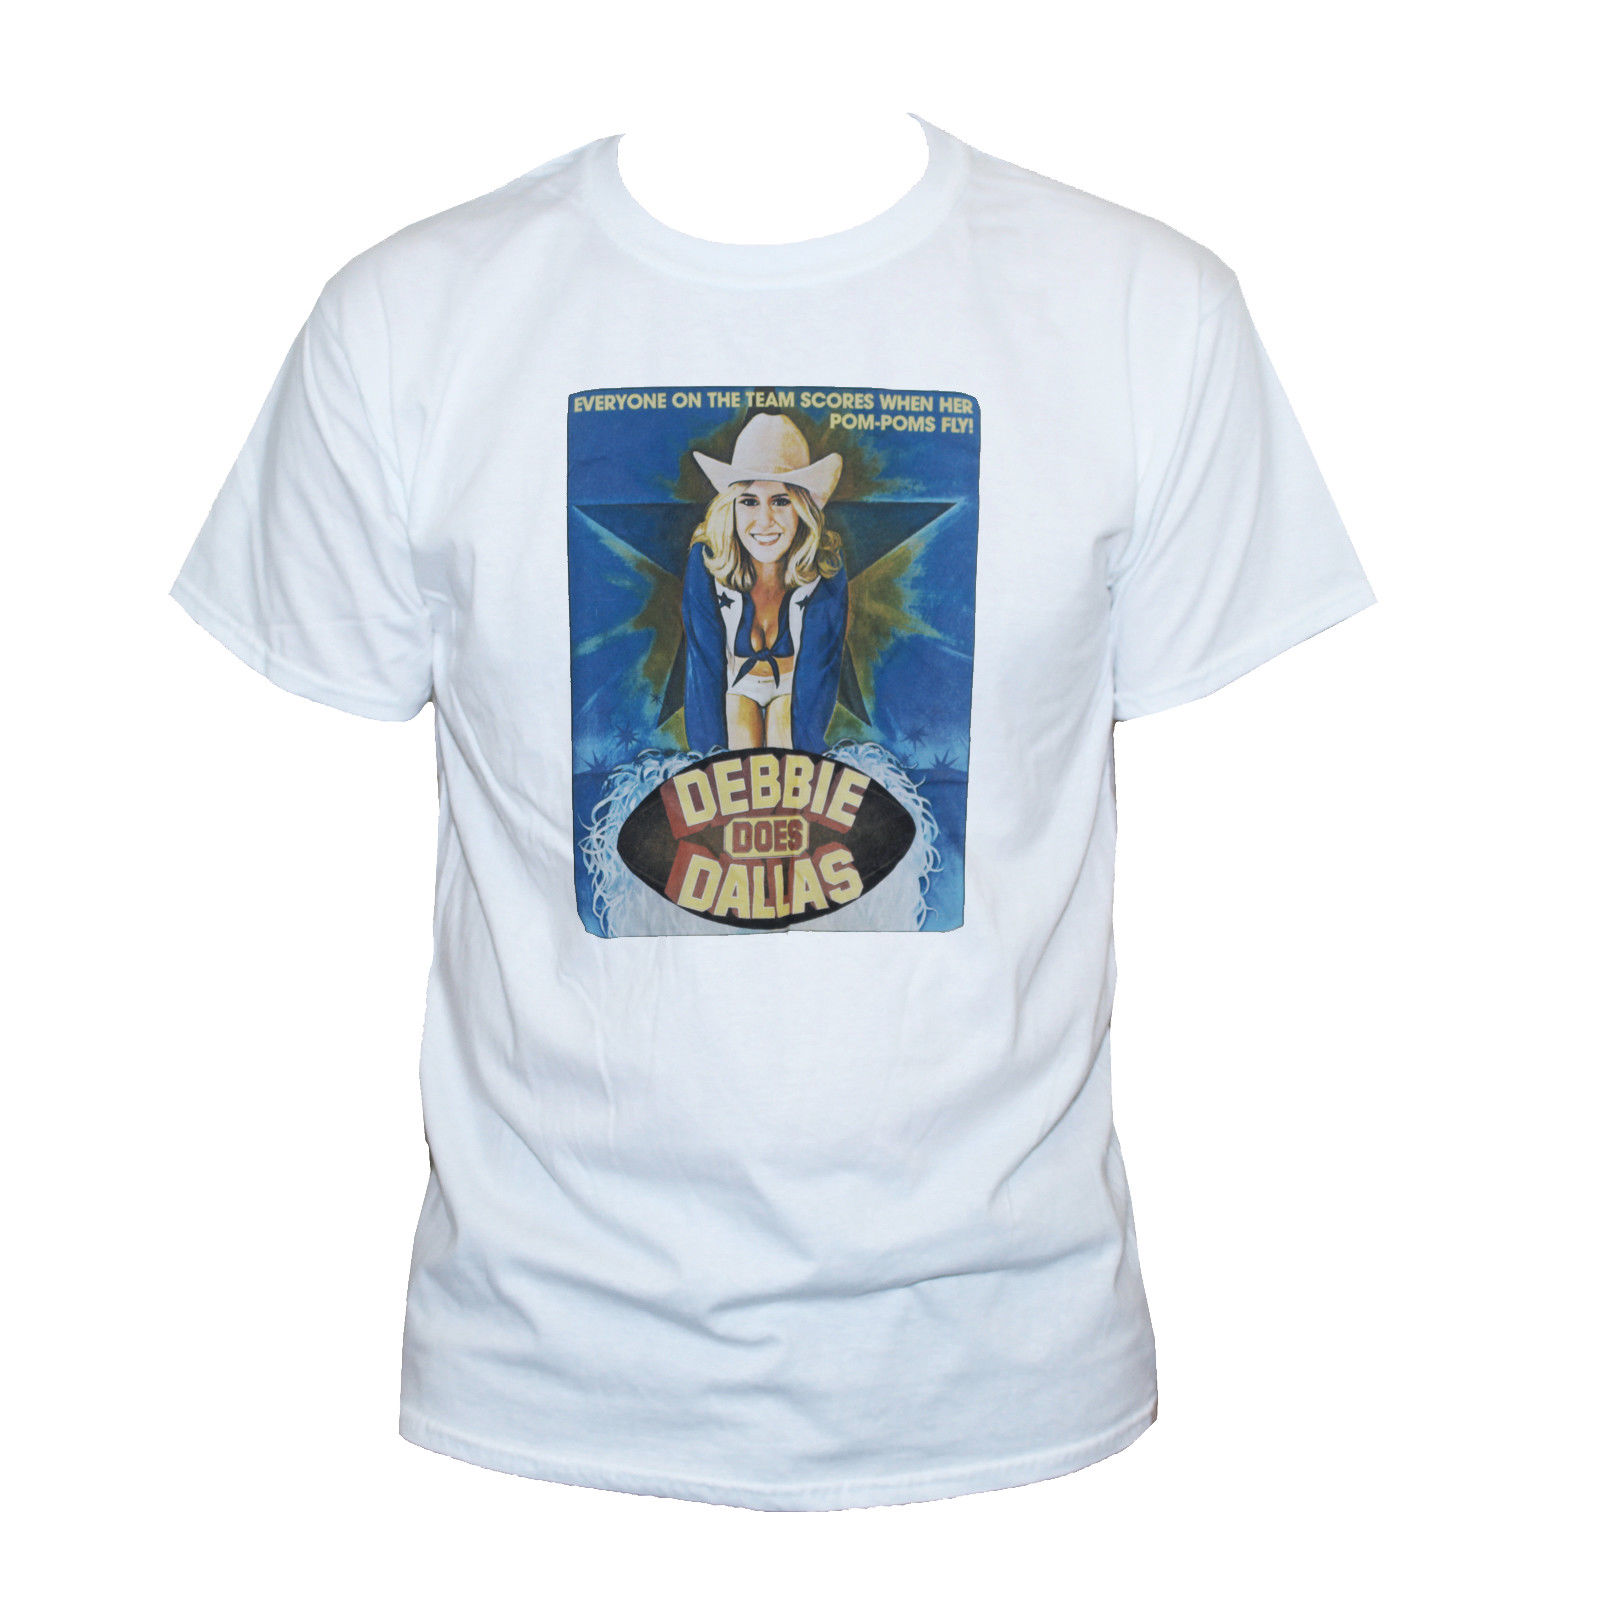 debbie does dallas t shirt porn star bambi woods graphic printed